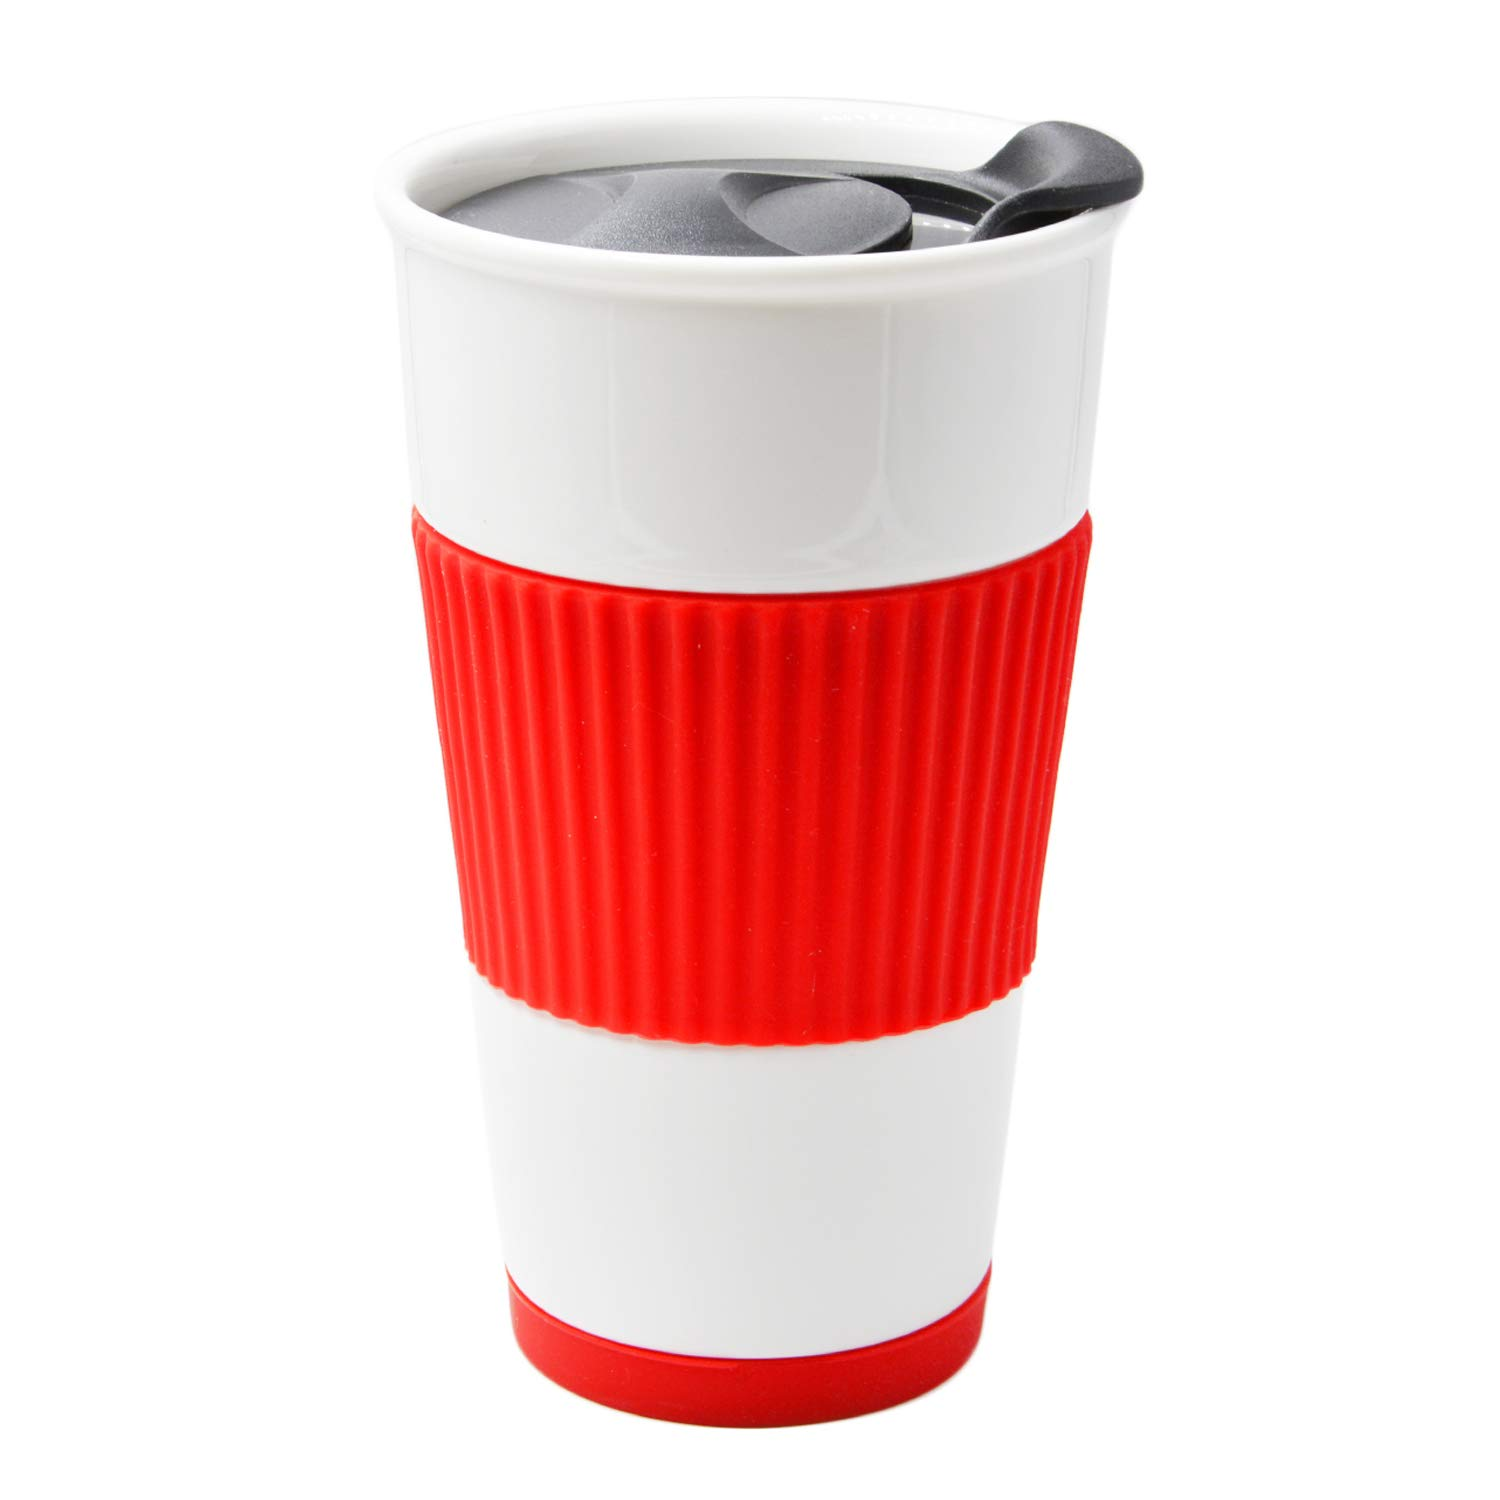 UDMug Car Commuter Travel Coffee Ceramic Cup with Slider Lid